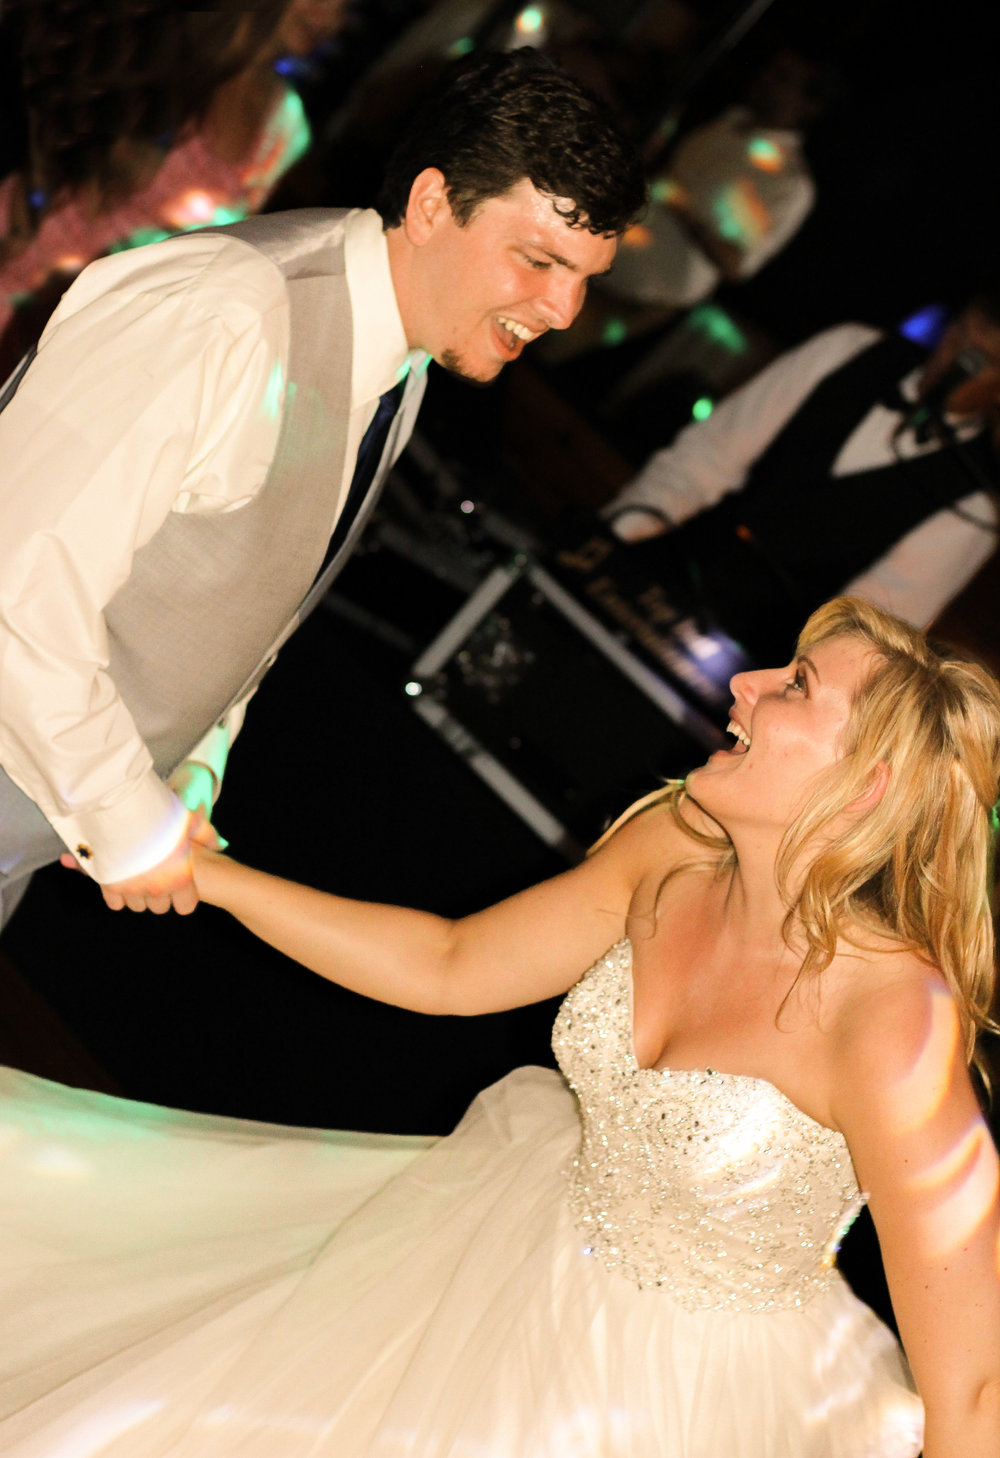 alexandra-rice-photography-reception-dance-groom-santa-cruz-bride.jpg